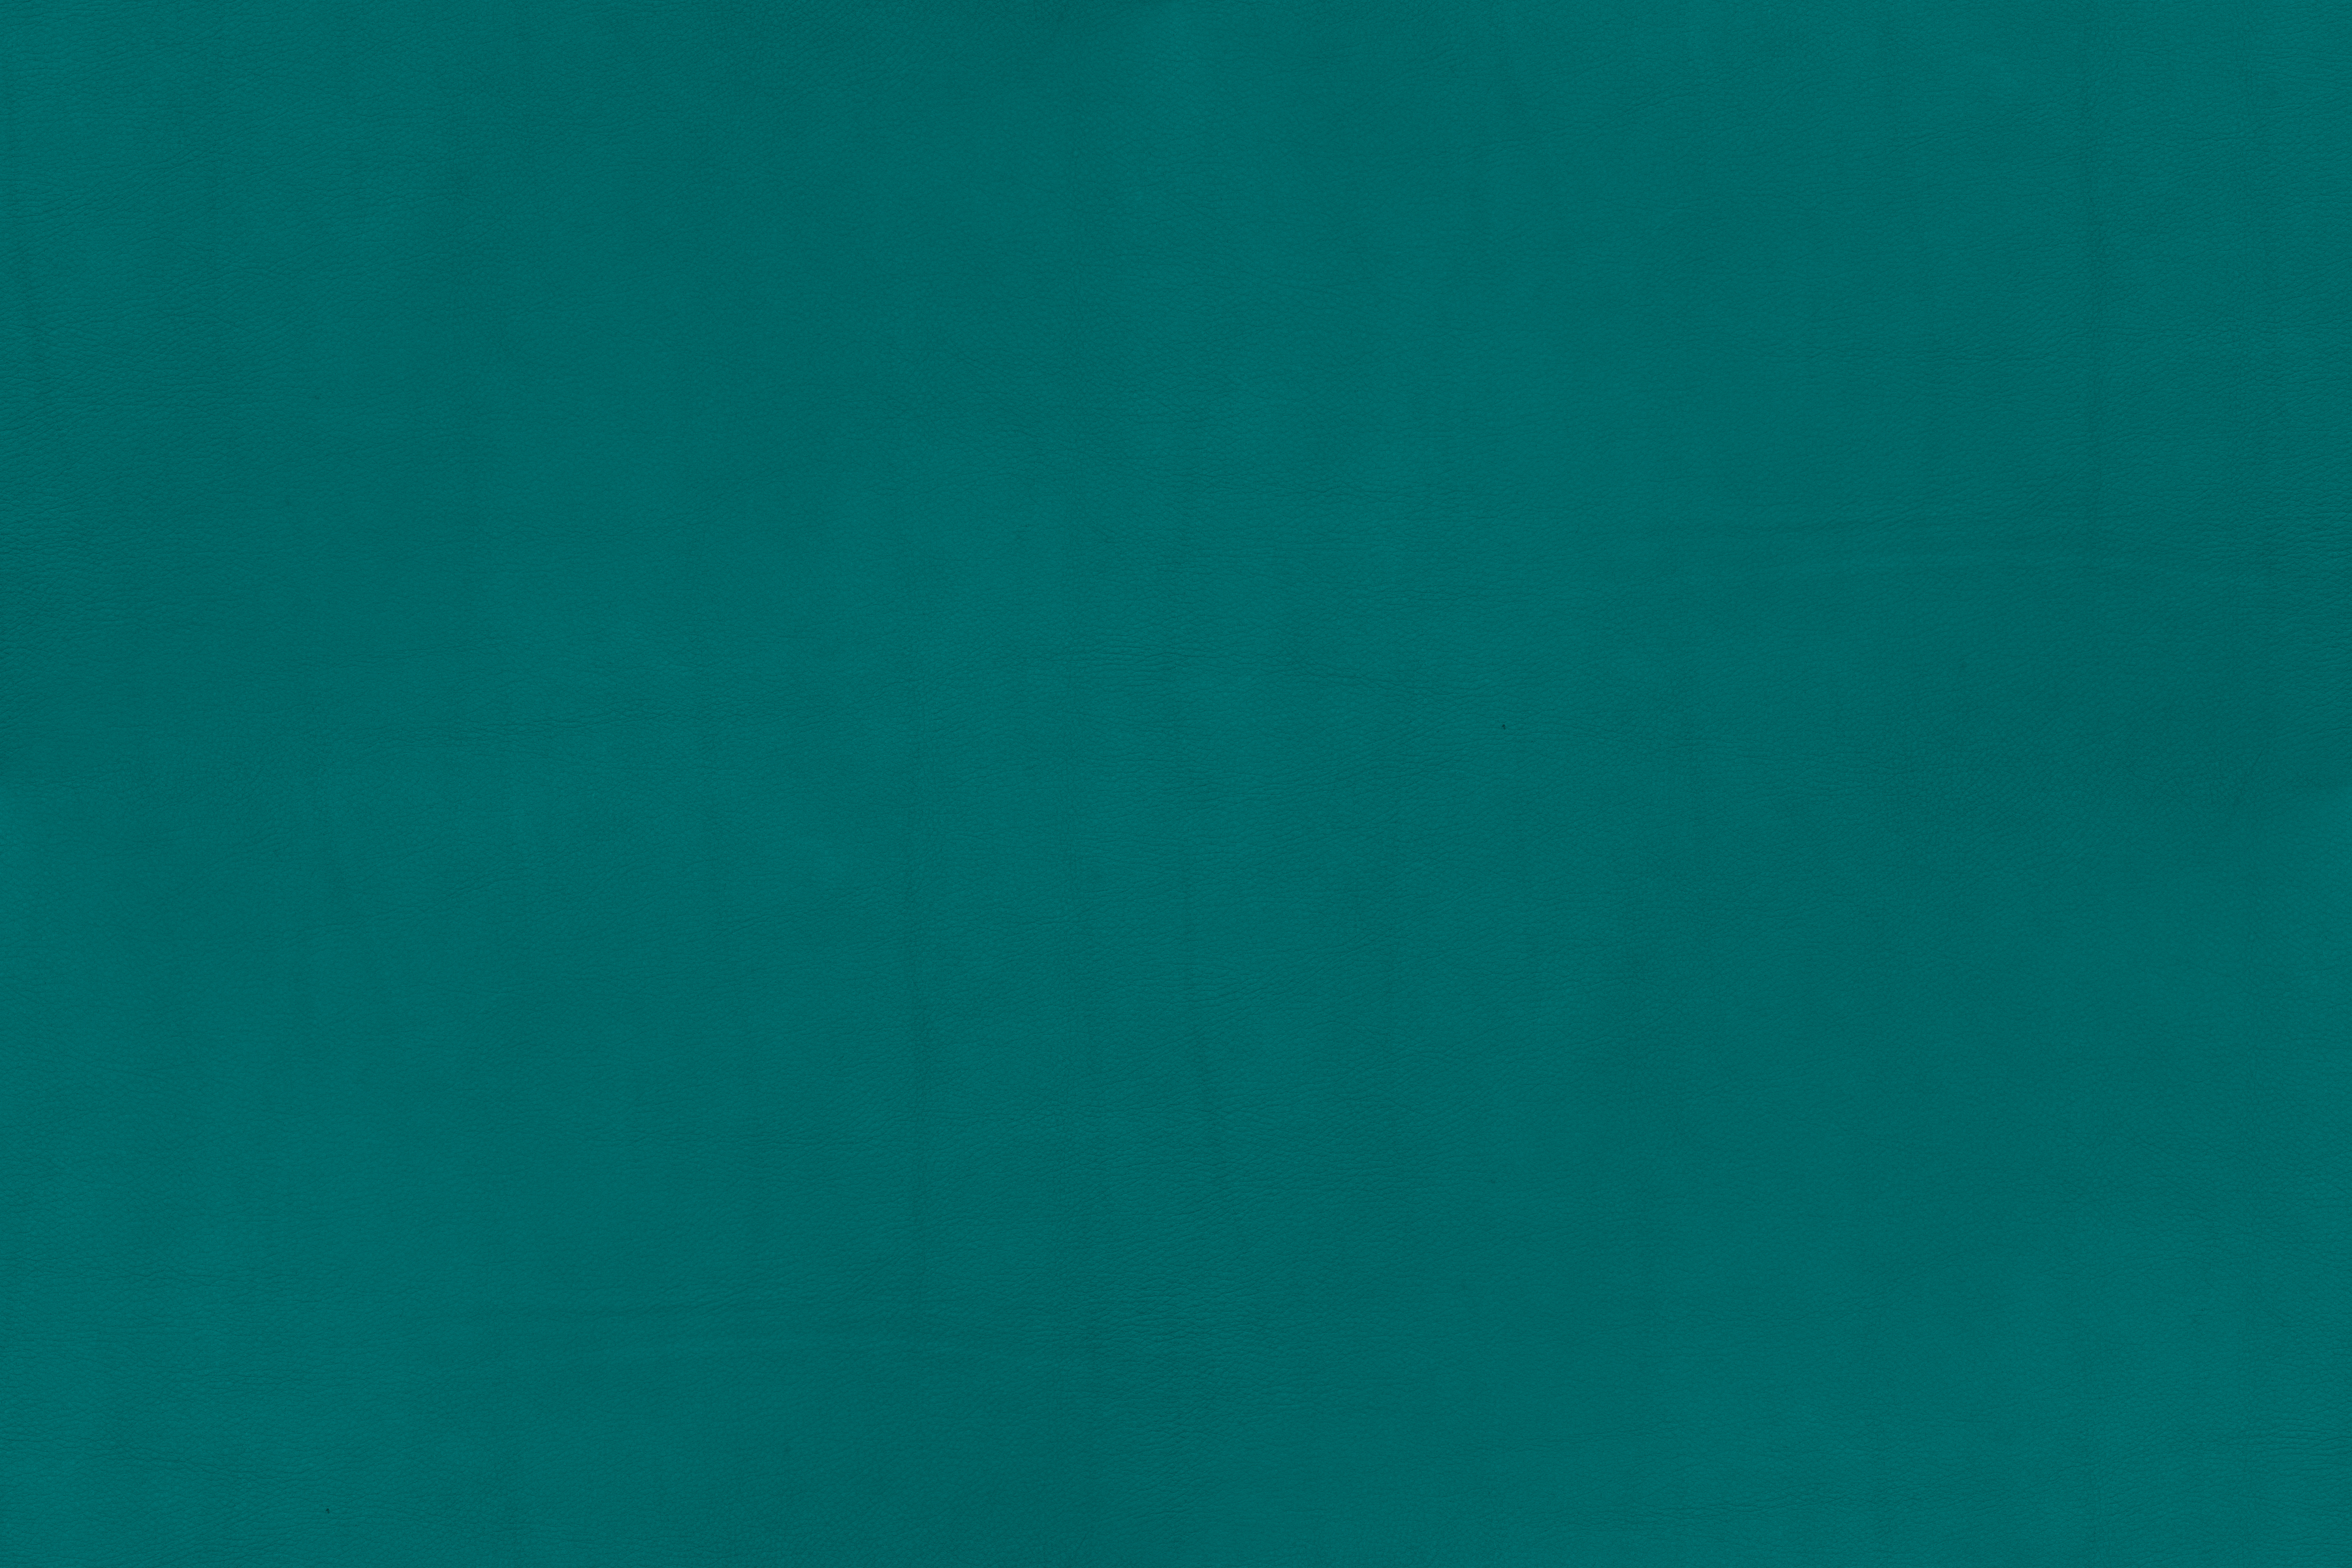 The Texture Of Teal And Turquoise: Leather Texture